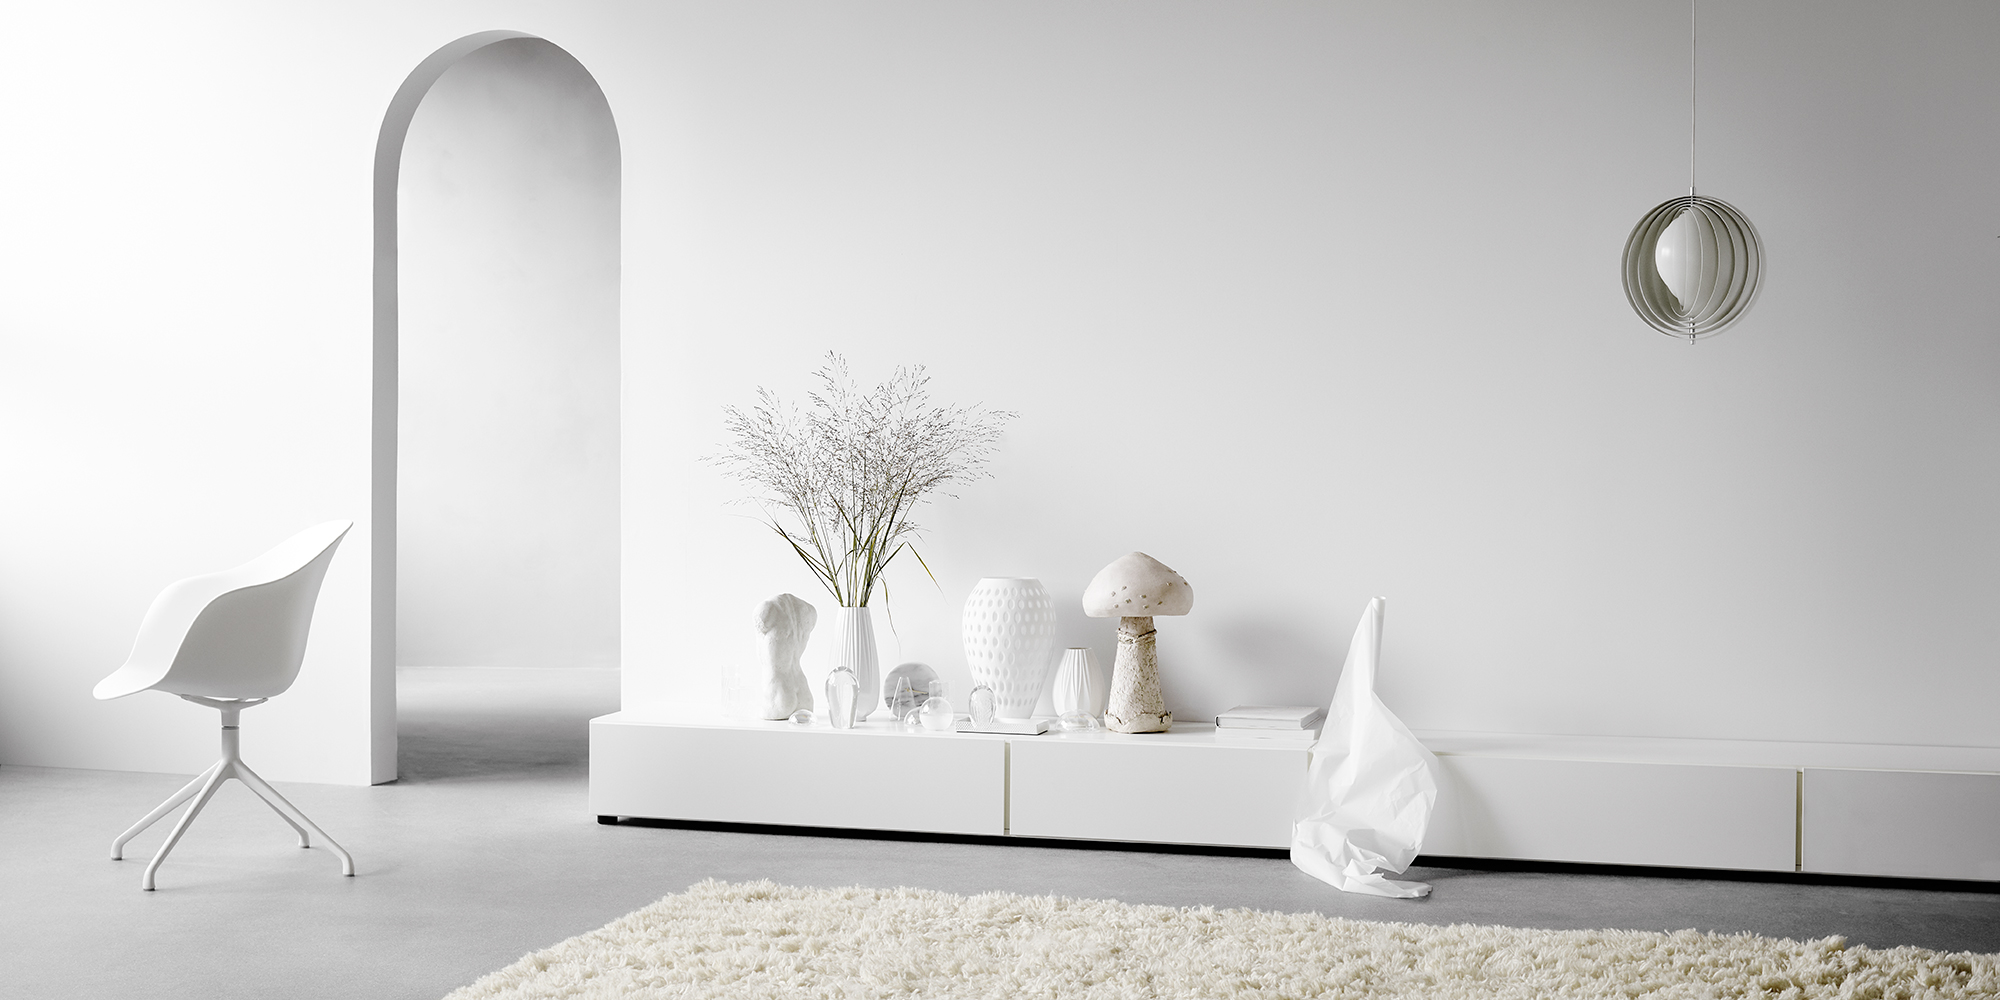 White base cabinets and white vases